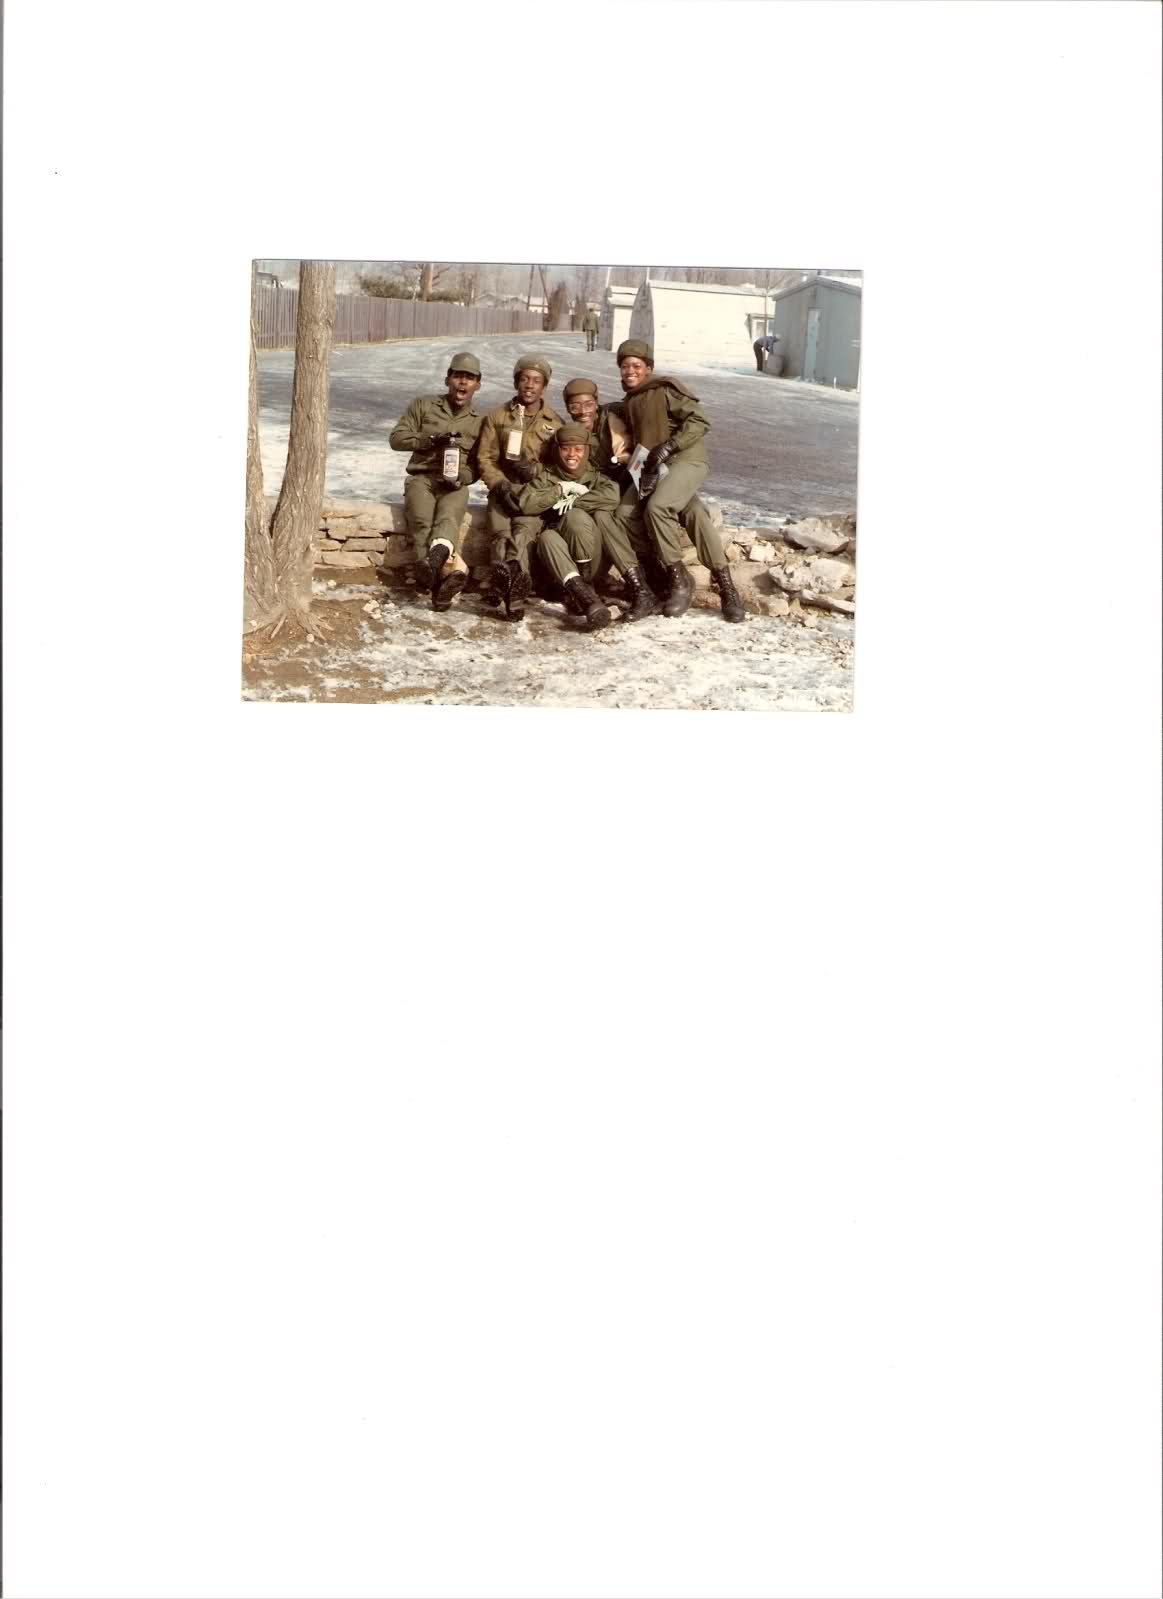 Camp Casey Dec. 1980 to Dec. 1981 2hxw0v7